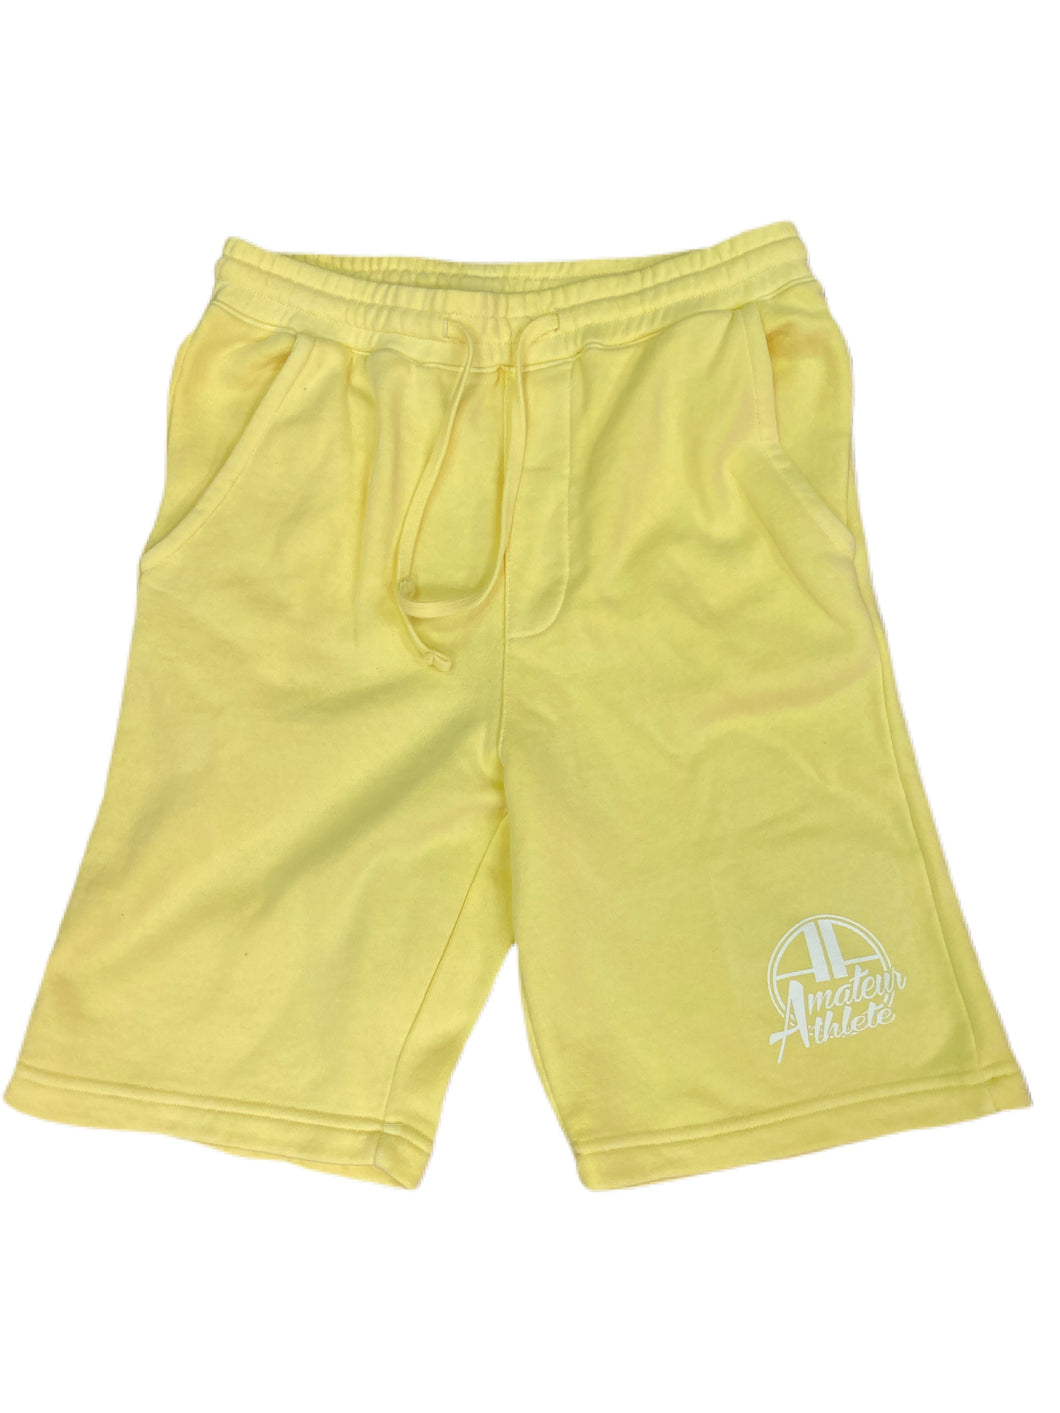 AA yellow pigment dyed shorts